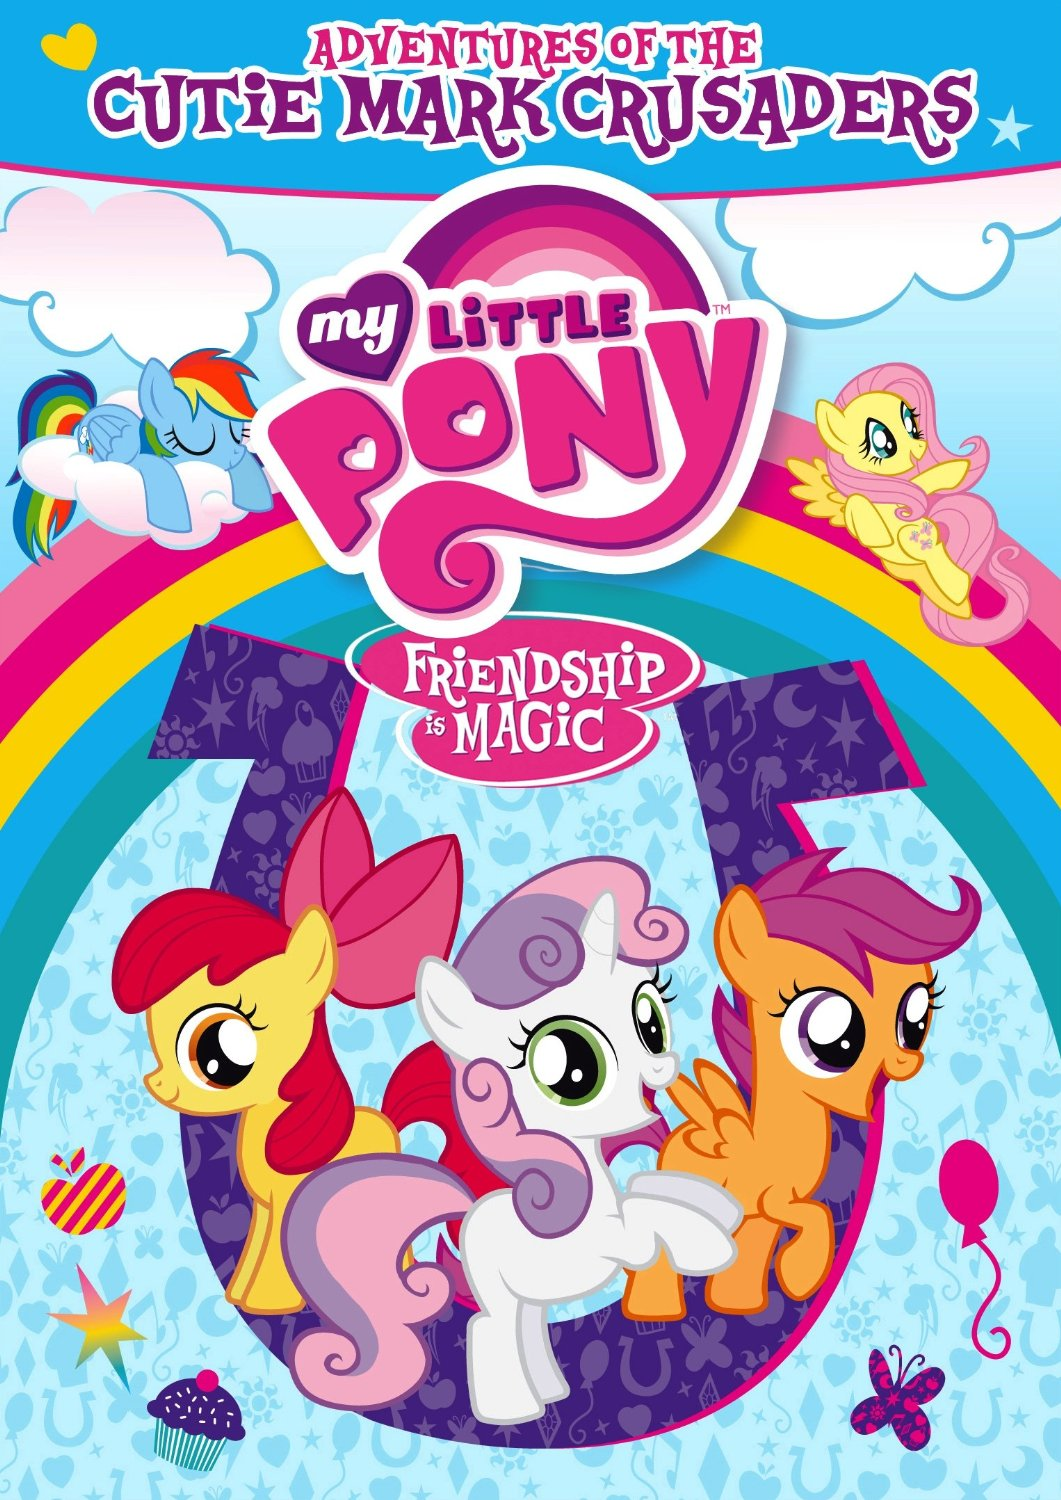 My Little Pony: Friendship is Magic: Adventures of the Cutie Mark Crusaders